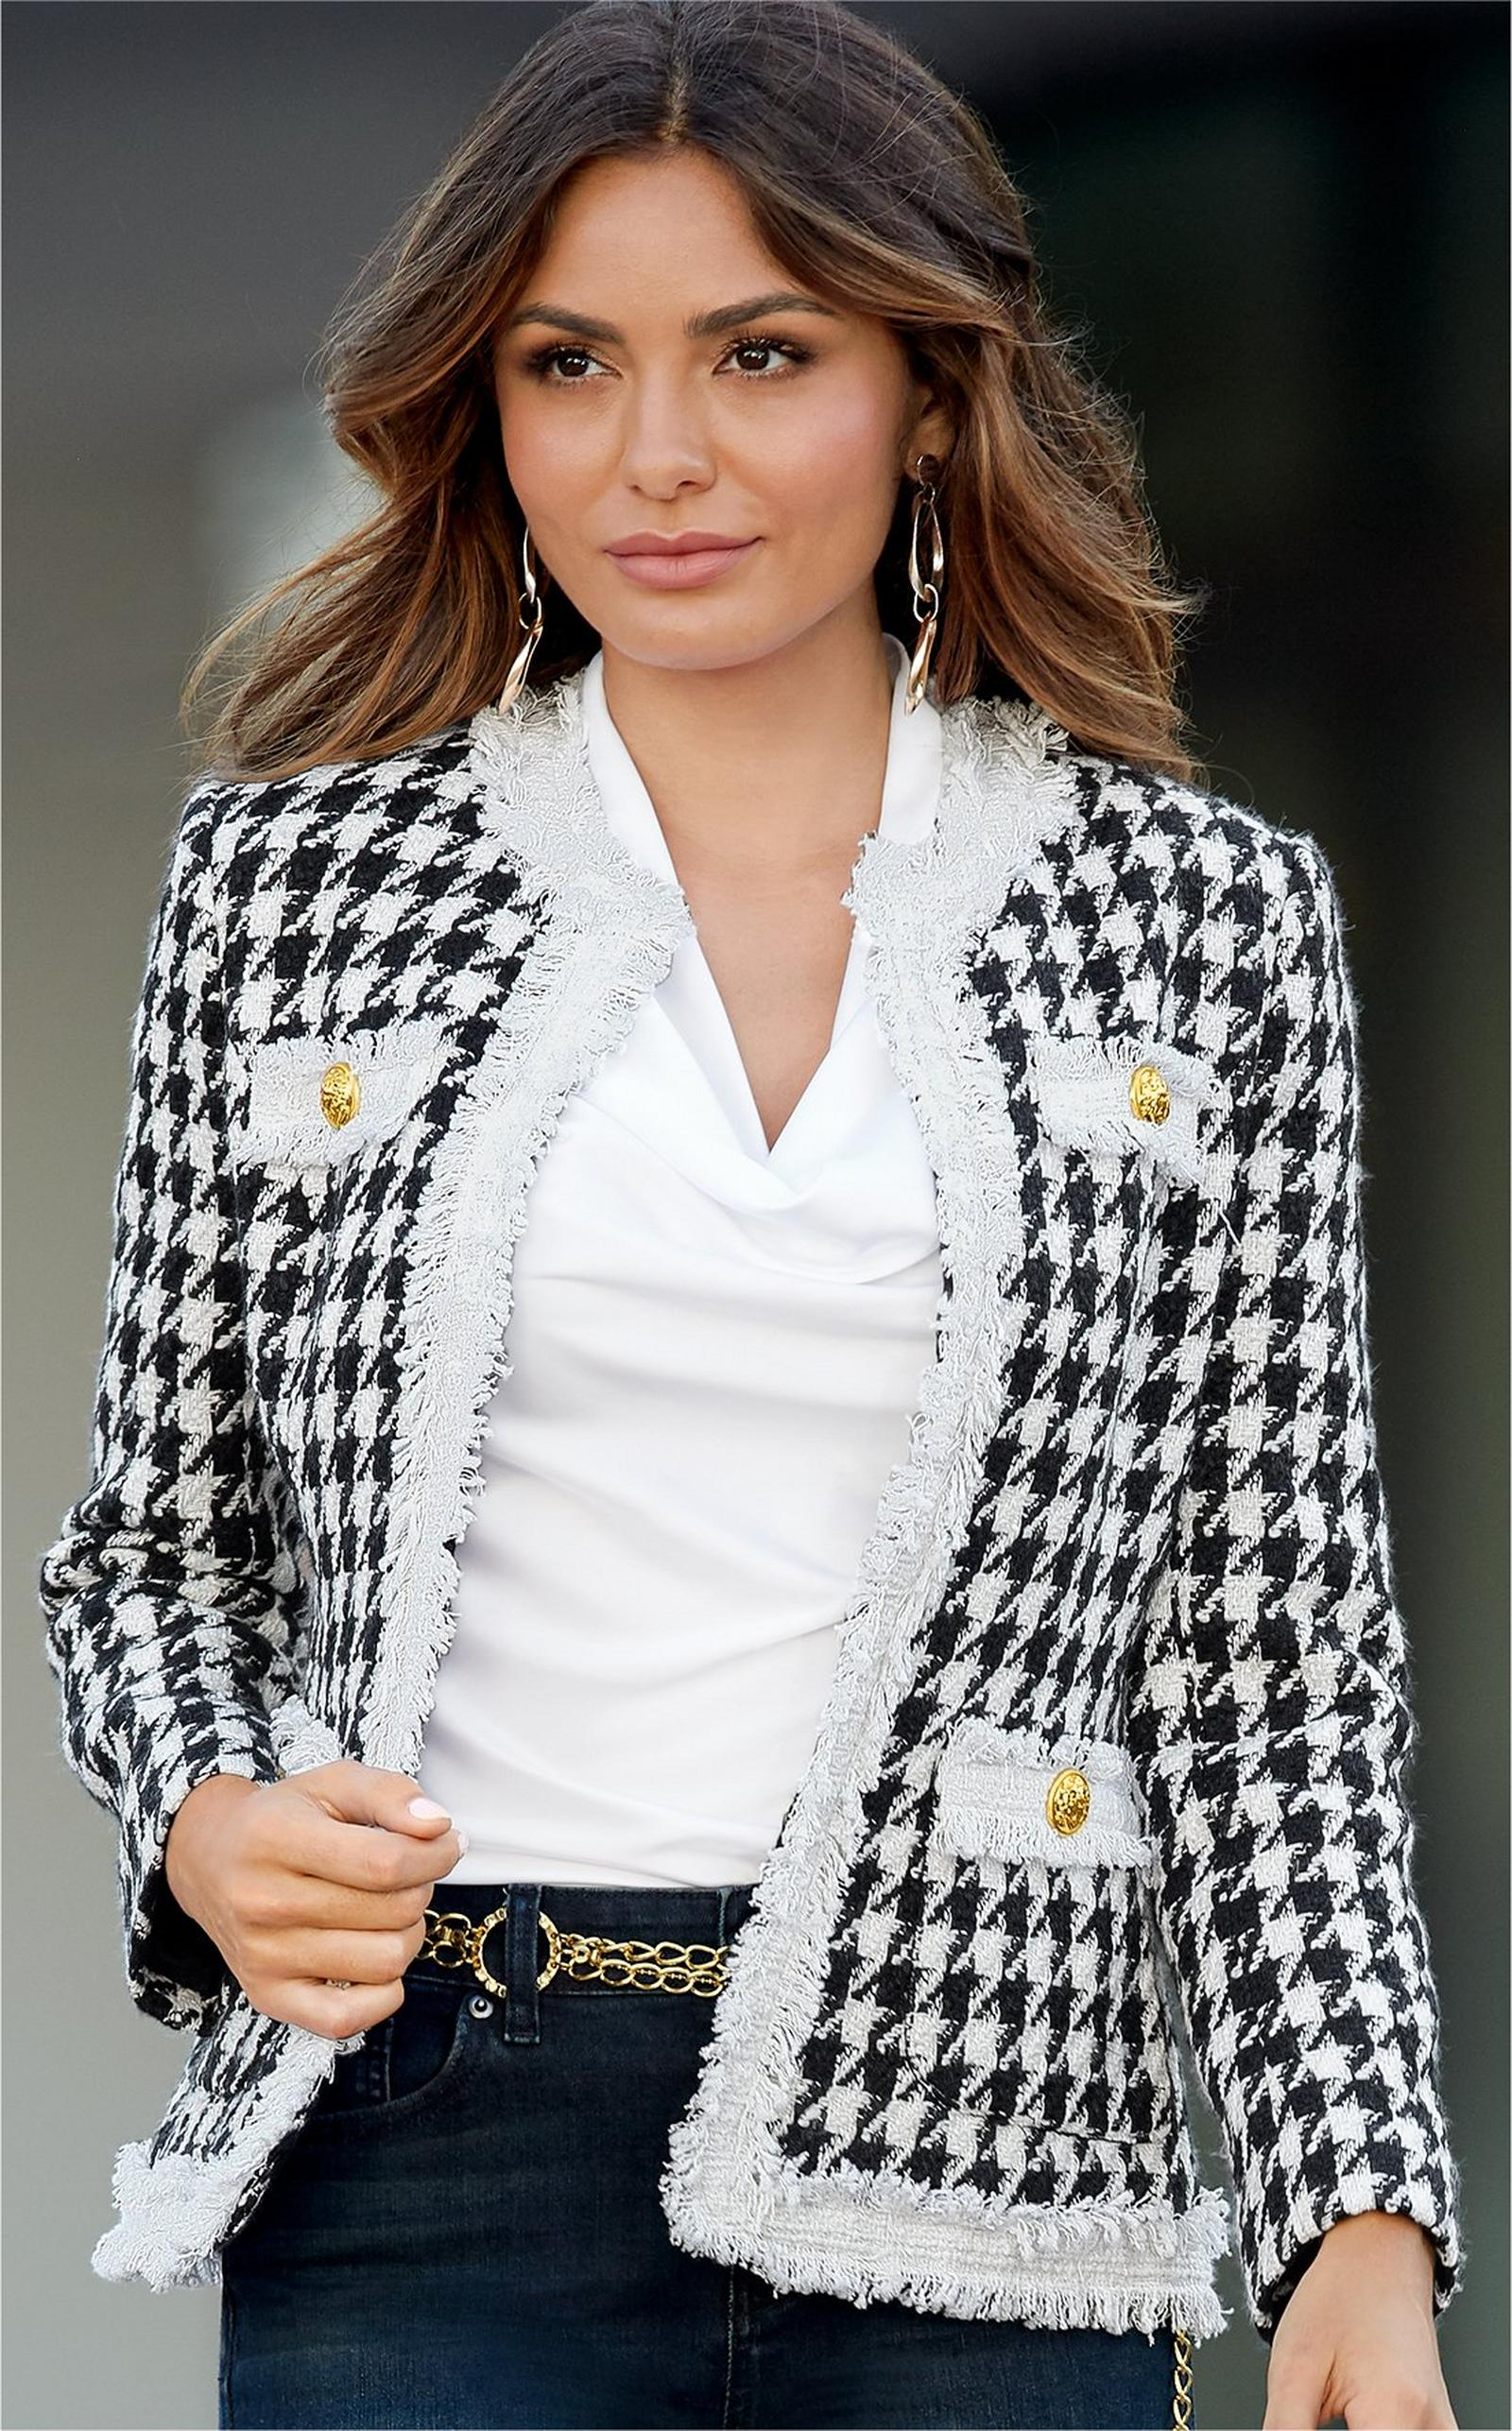 model wearing a black and white houndstooth tweed jacket over a white cowl neck top and jeans.